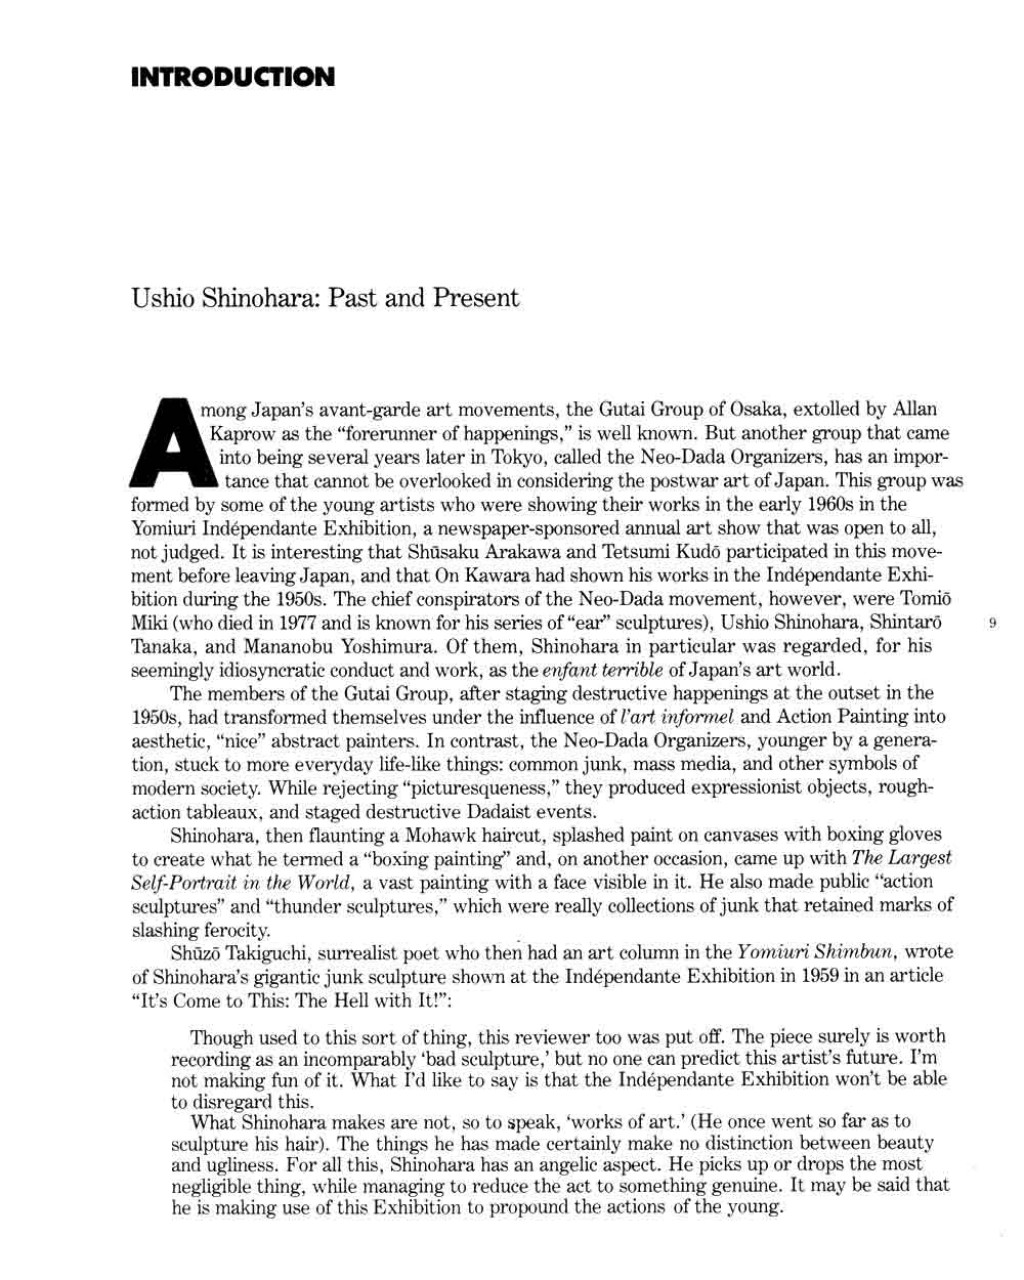 005 How To Cite An Essay Example Ushio Shinohara Past And Present Pg 1 Archaicawful Mla In A Book 8th Edition Large